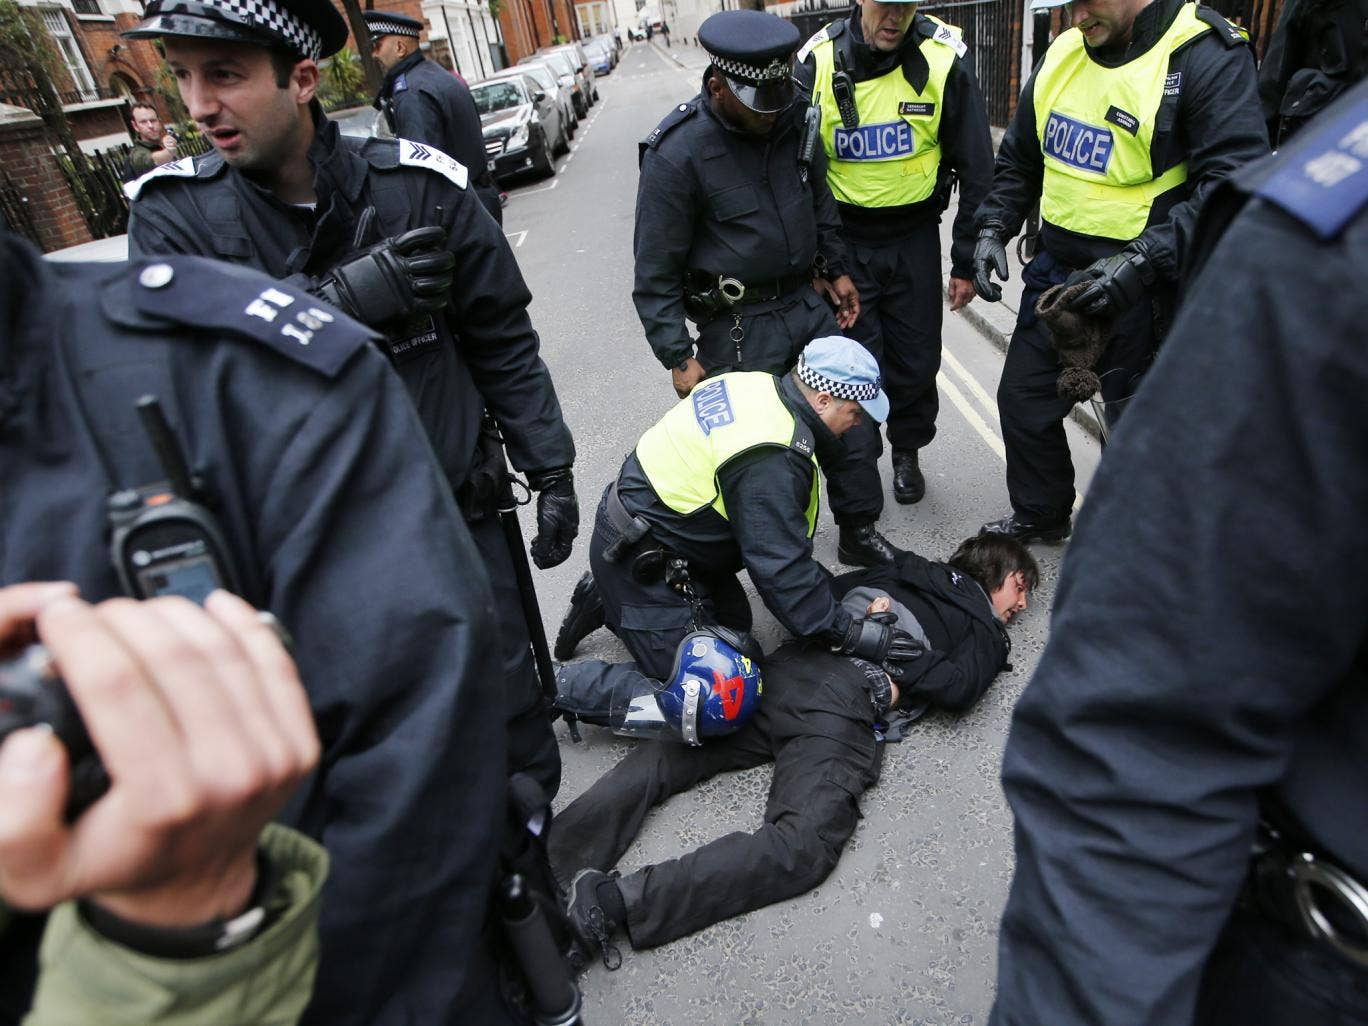 Police detain an anti-capitalist protester in London on 11 June 2013